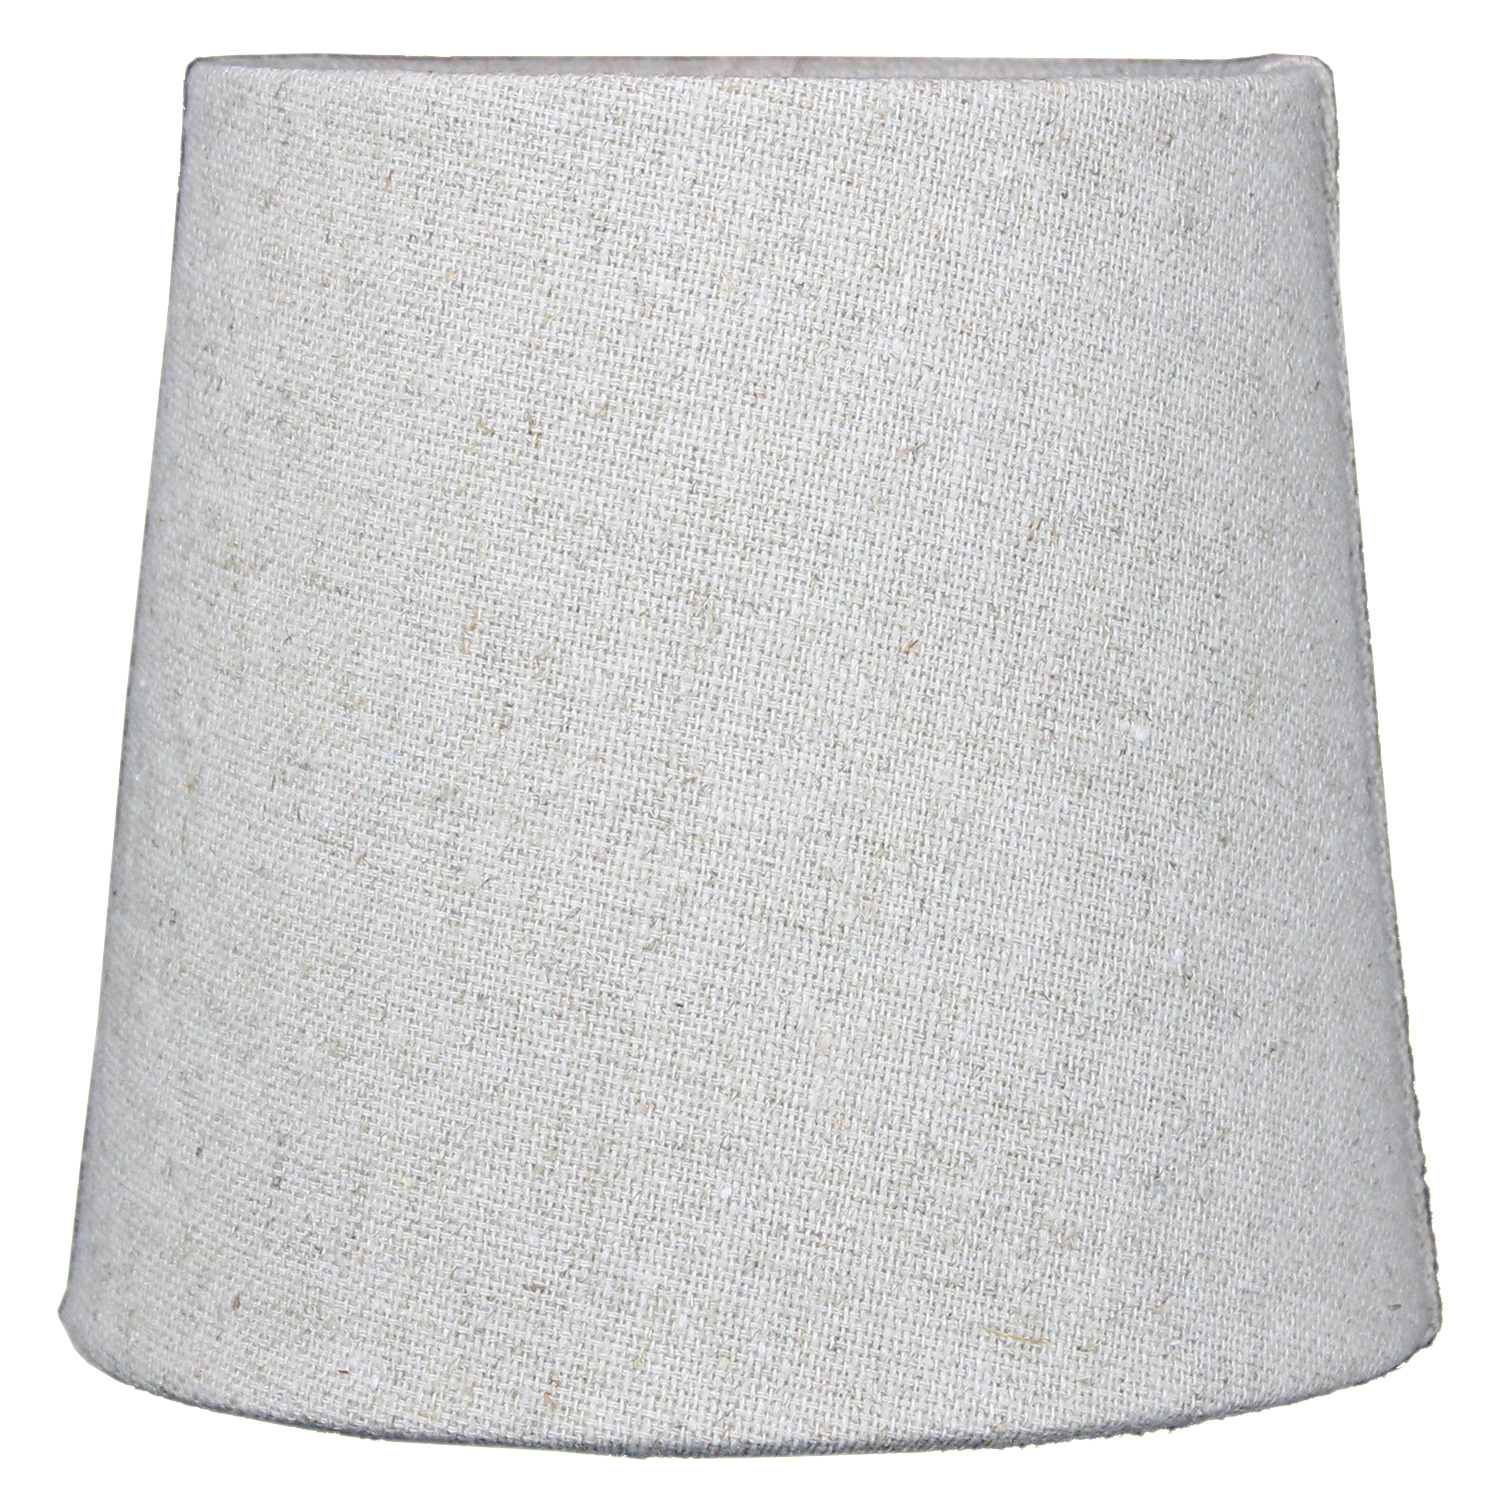 4x5x5 Khaki Burlap Drum Chandelier Clip-On Lampshade